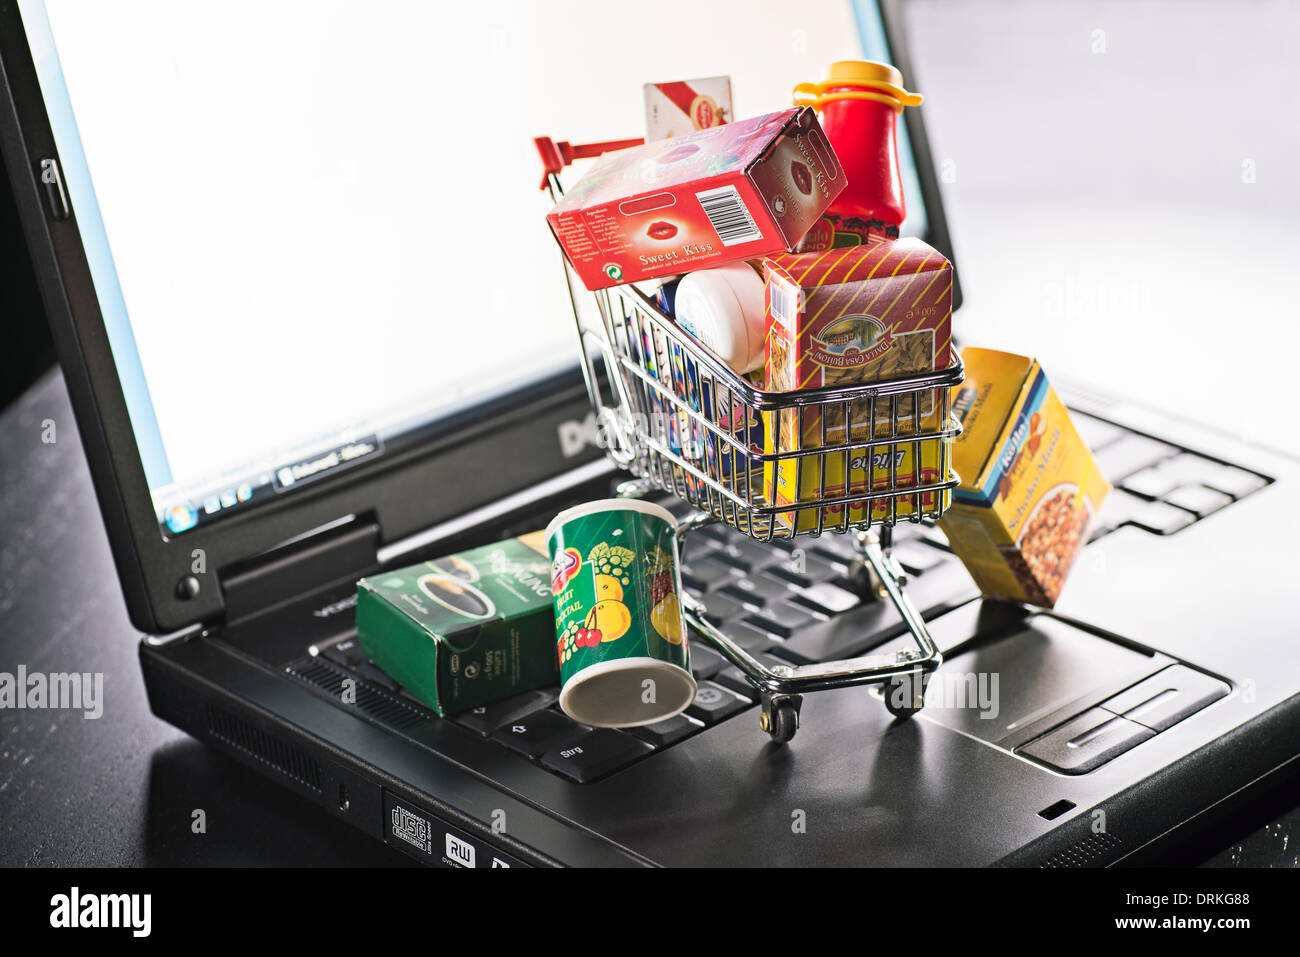 Miniature shopping cart with food packaging and laptop as a symbol for online shopping. Stock Photo